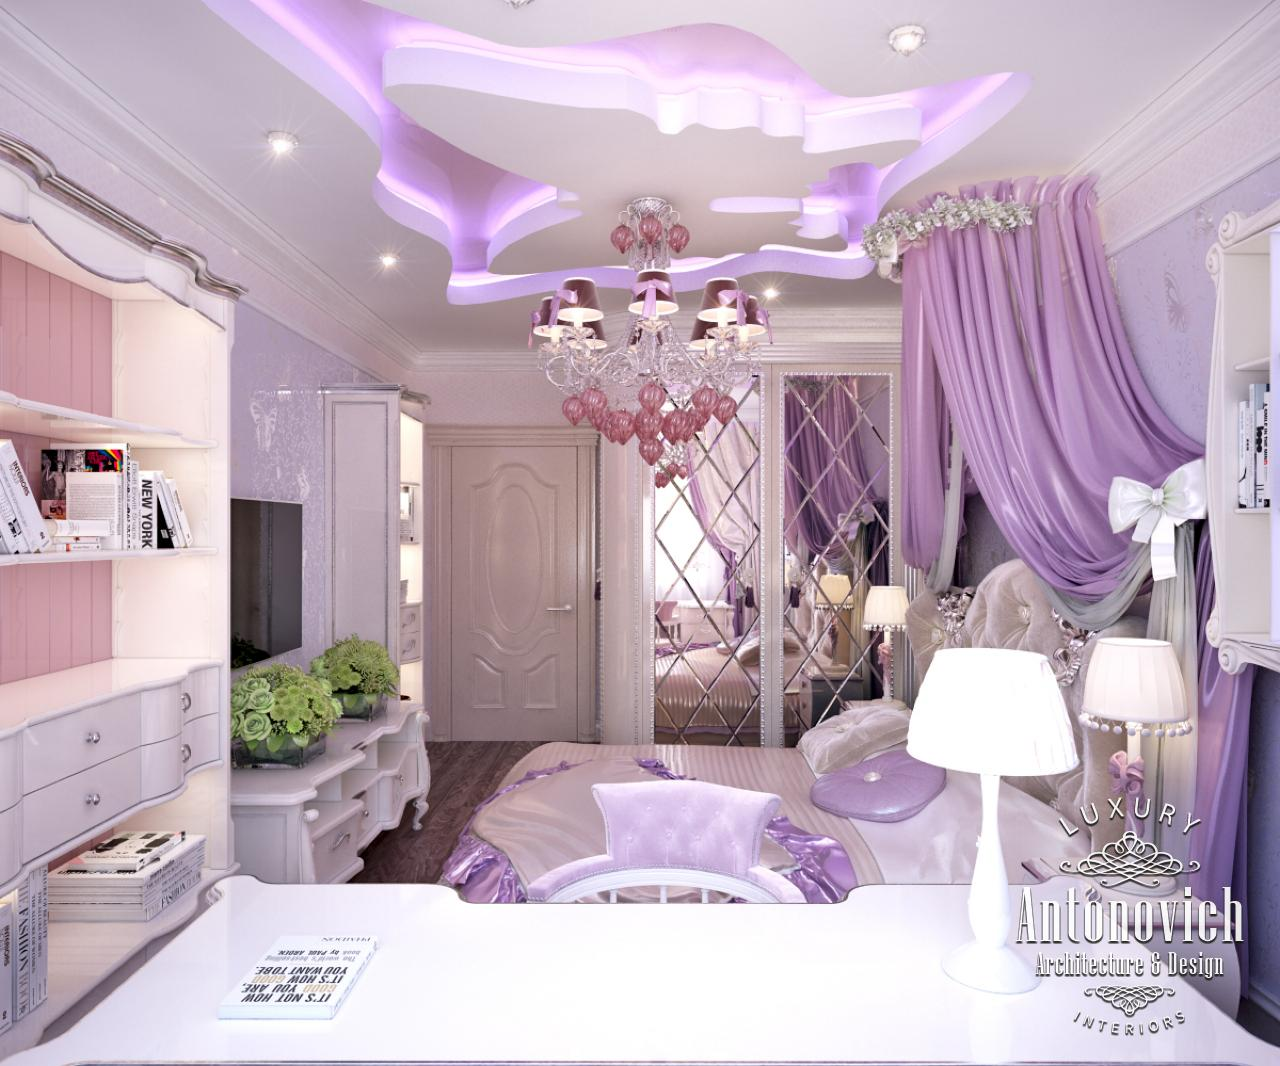 Interior Design Dubai  which Katrina Antonovich offers her customers fills  the pink girly bedroom with a sense of warmth of home comfort. LUXURY ANTONOVICH DESIGN UAE  Pink girly bedroom from Katrina